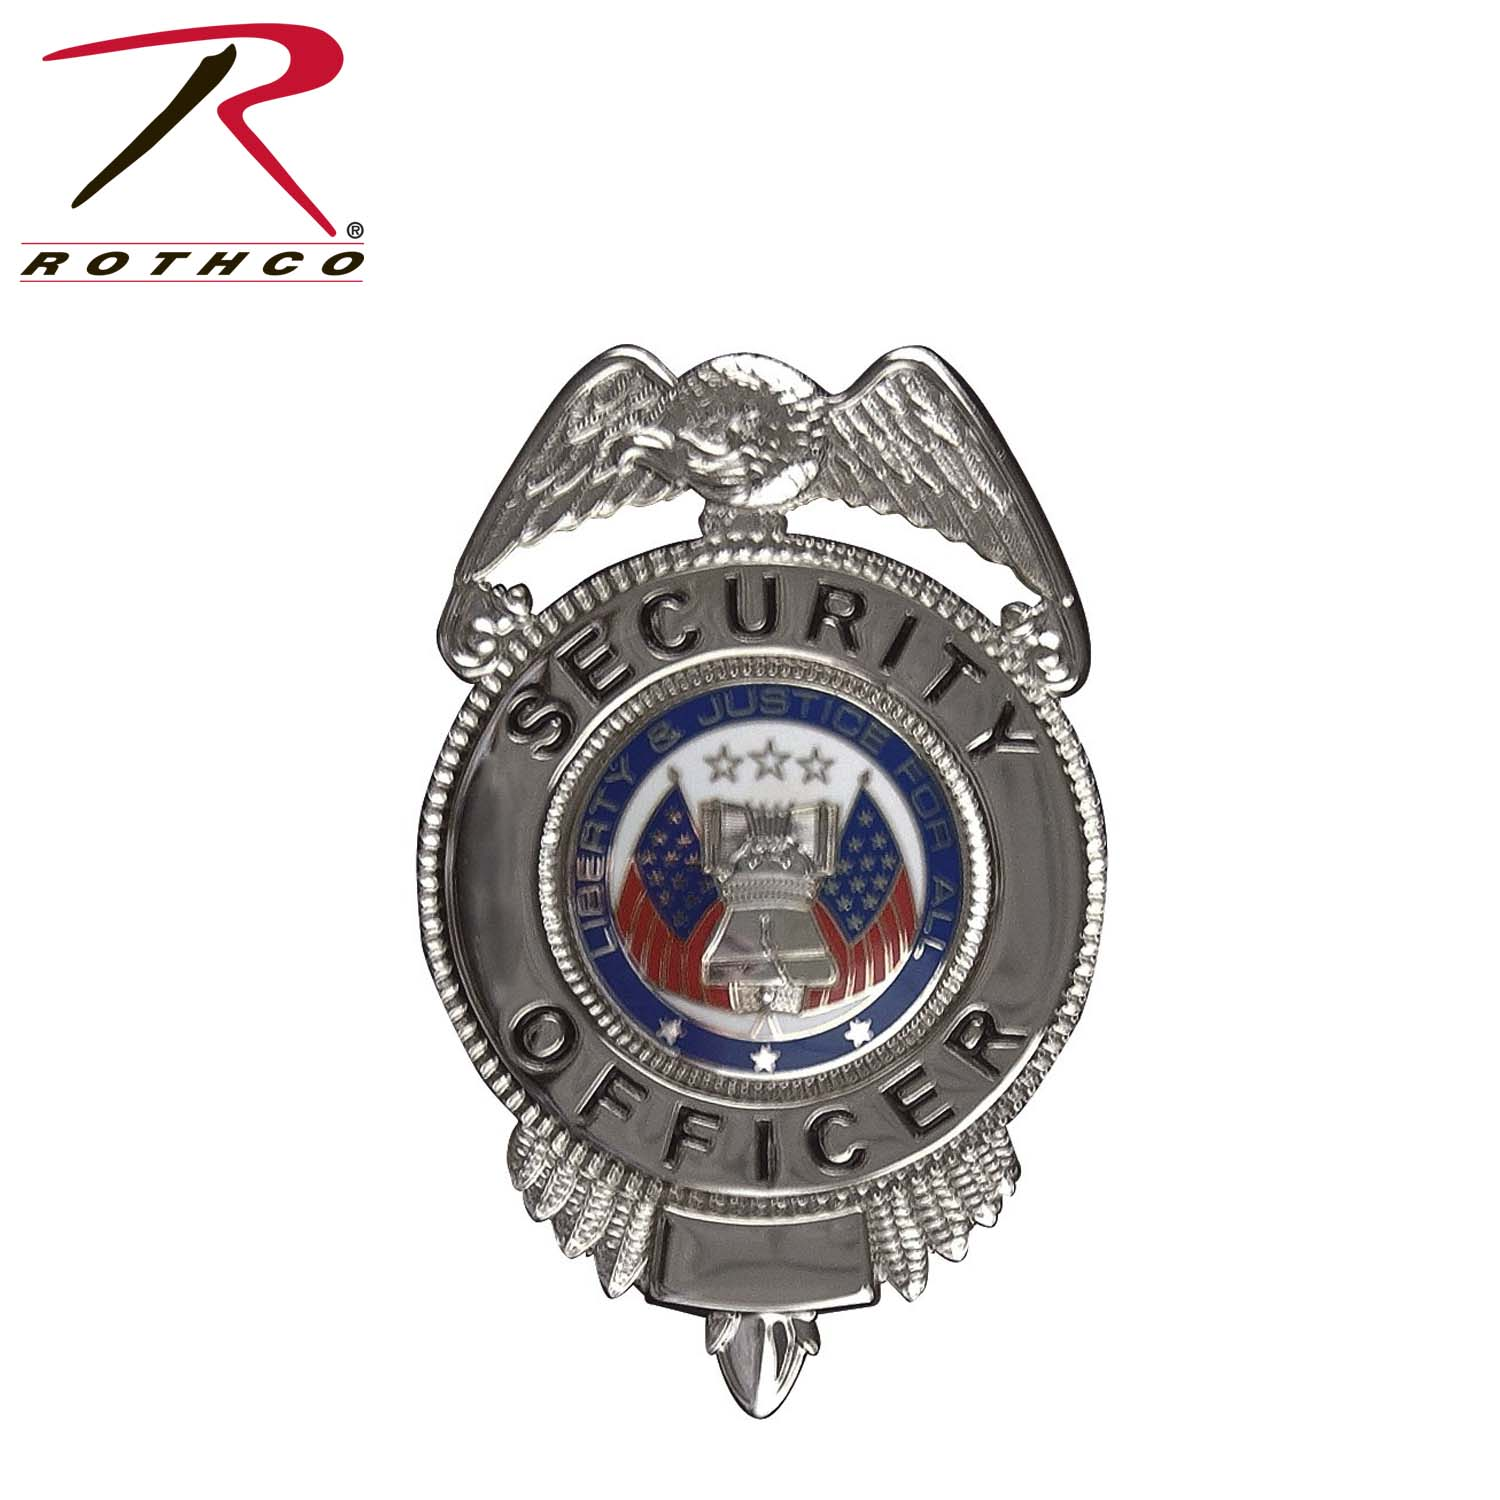 Rothco w flags hr. Badge clipart security officer